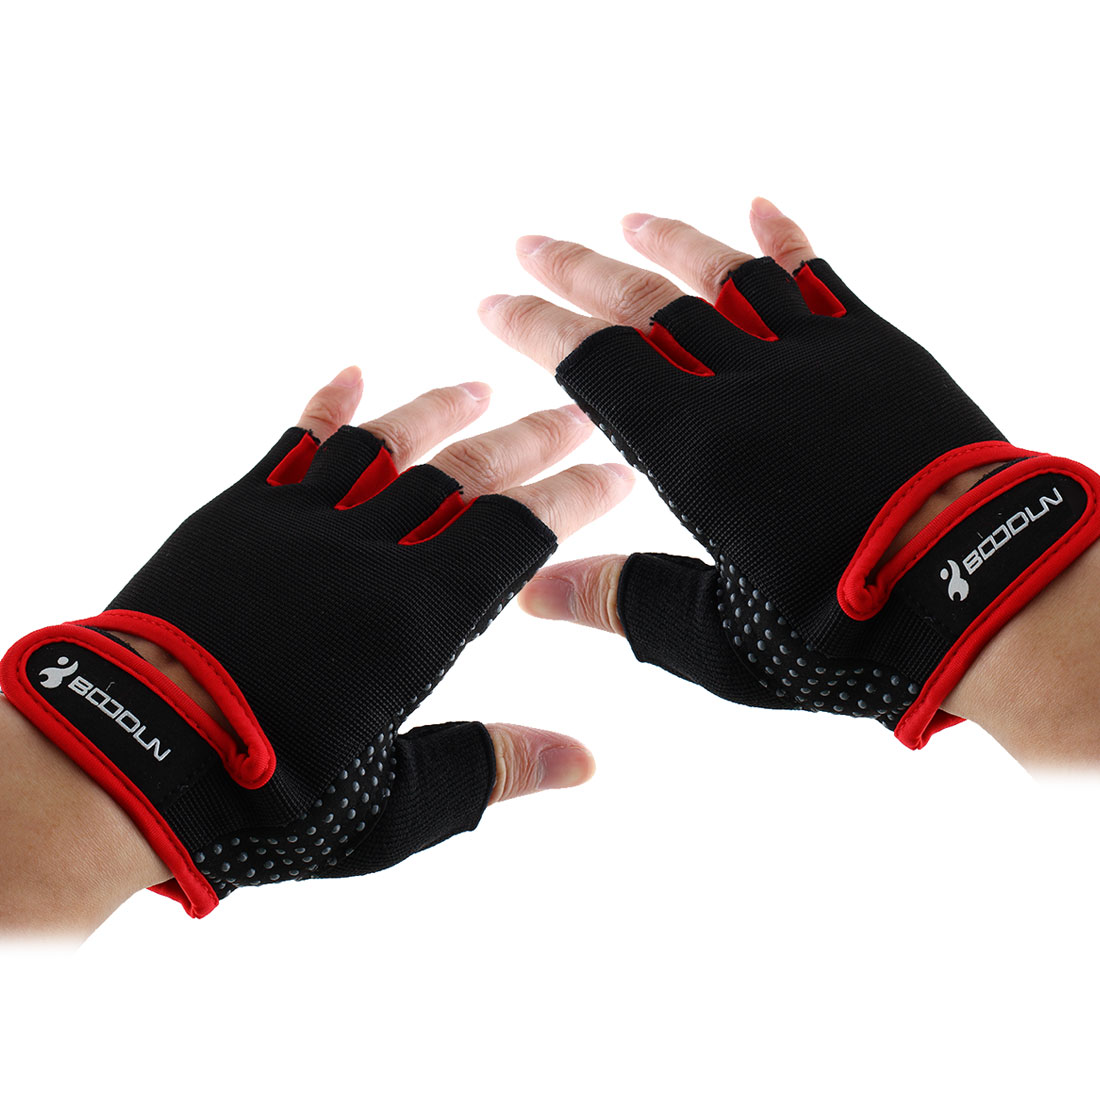 BOODUN Authorized Adult Unisex Spandex Adjustable Sports Training Workout Mittens Fitness Gloves Red S Pair